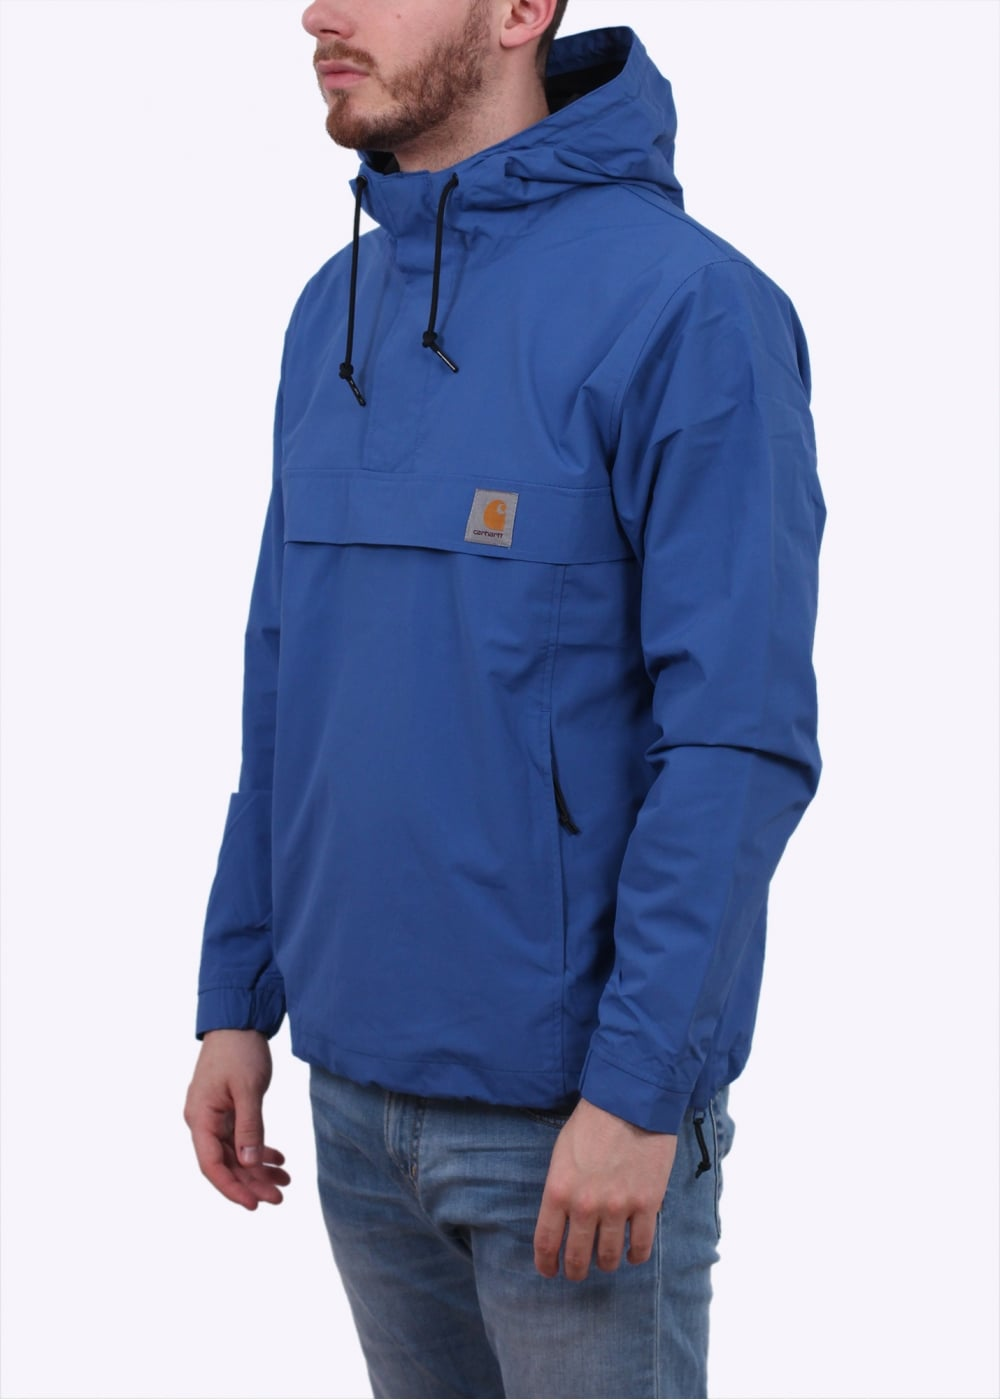 carhartt nimbus pullover jacket dolphin carhartt from triads uk. Black Bedroom Furniture Sets. Home Design Ideas